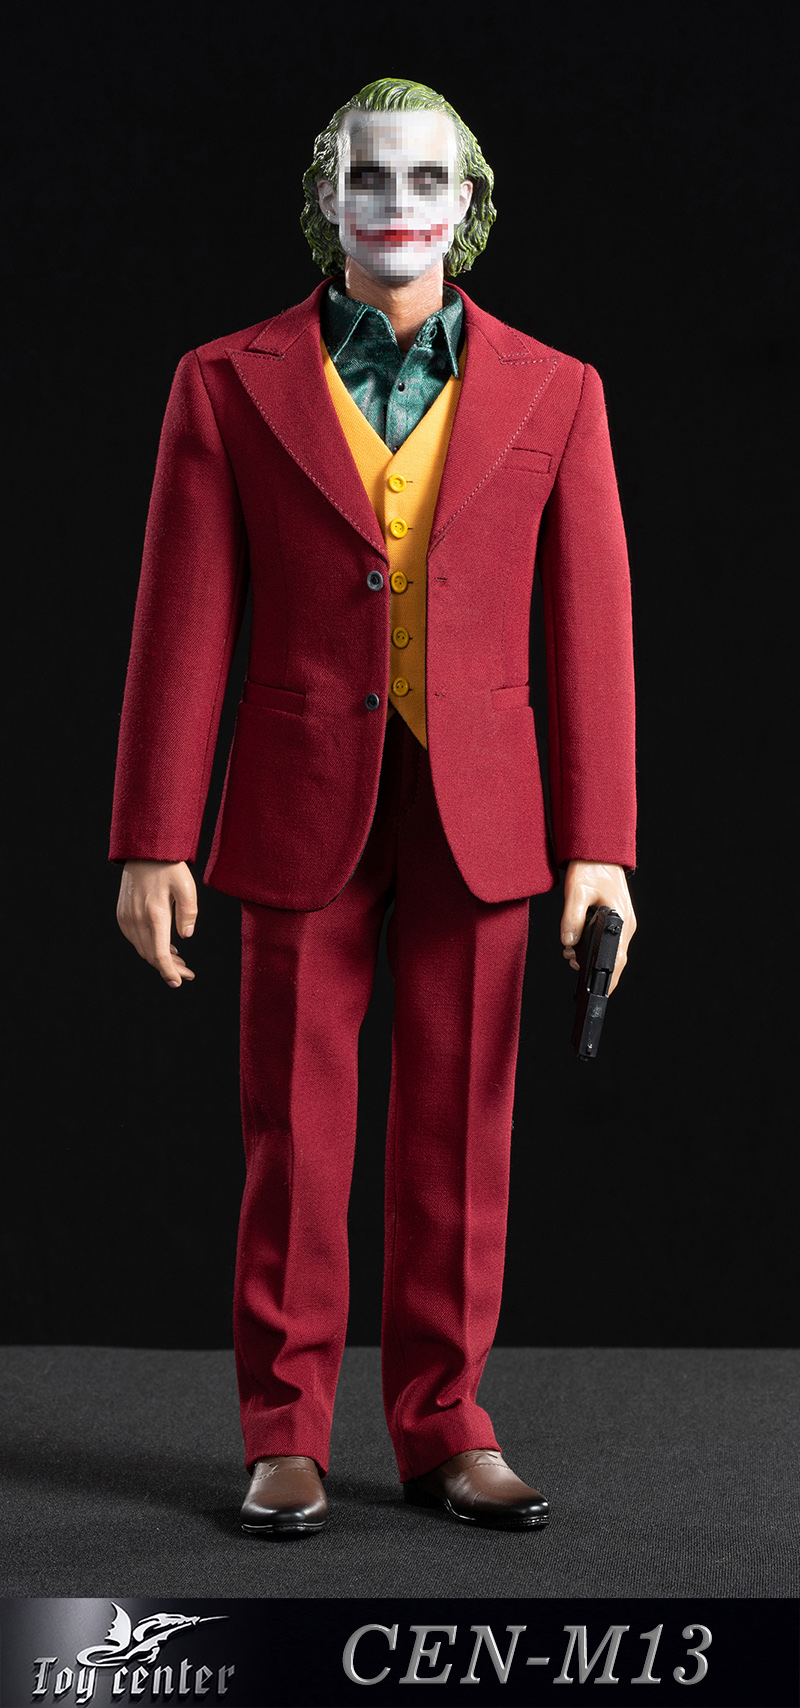 clothes - NEW PRODUCT: Toy center: 1/6 Clown exclusive red suit CEN-M13# 22332811